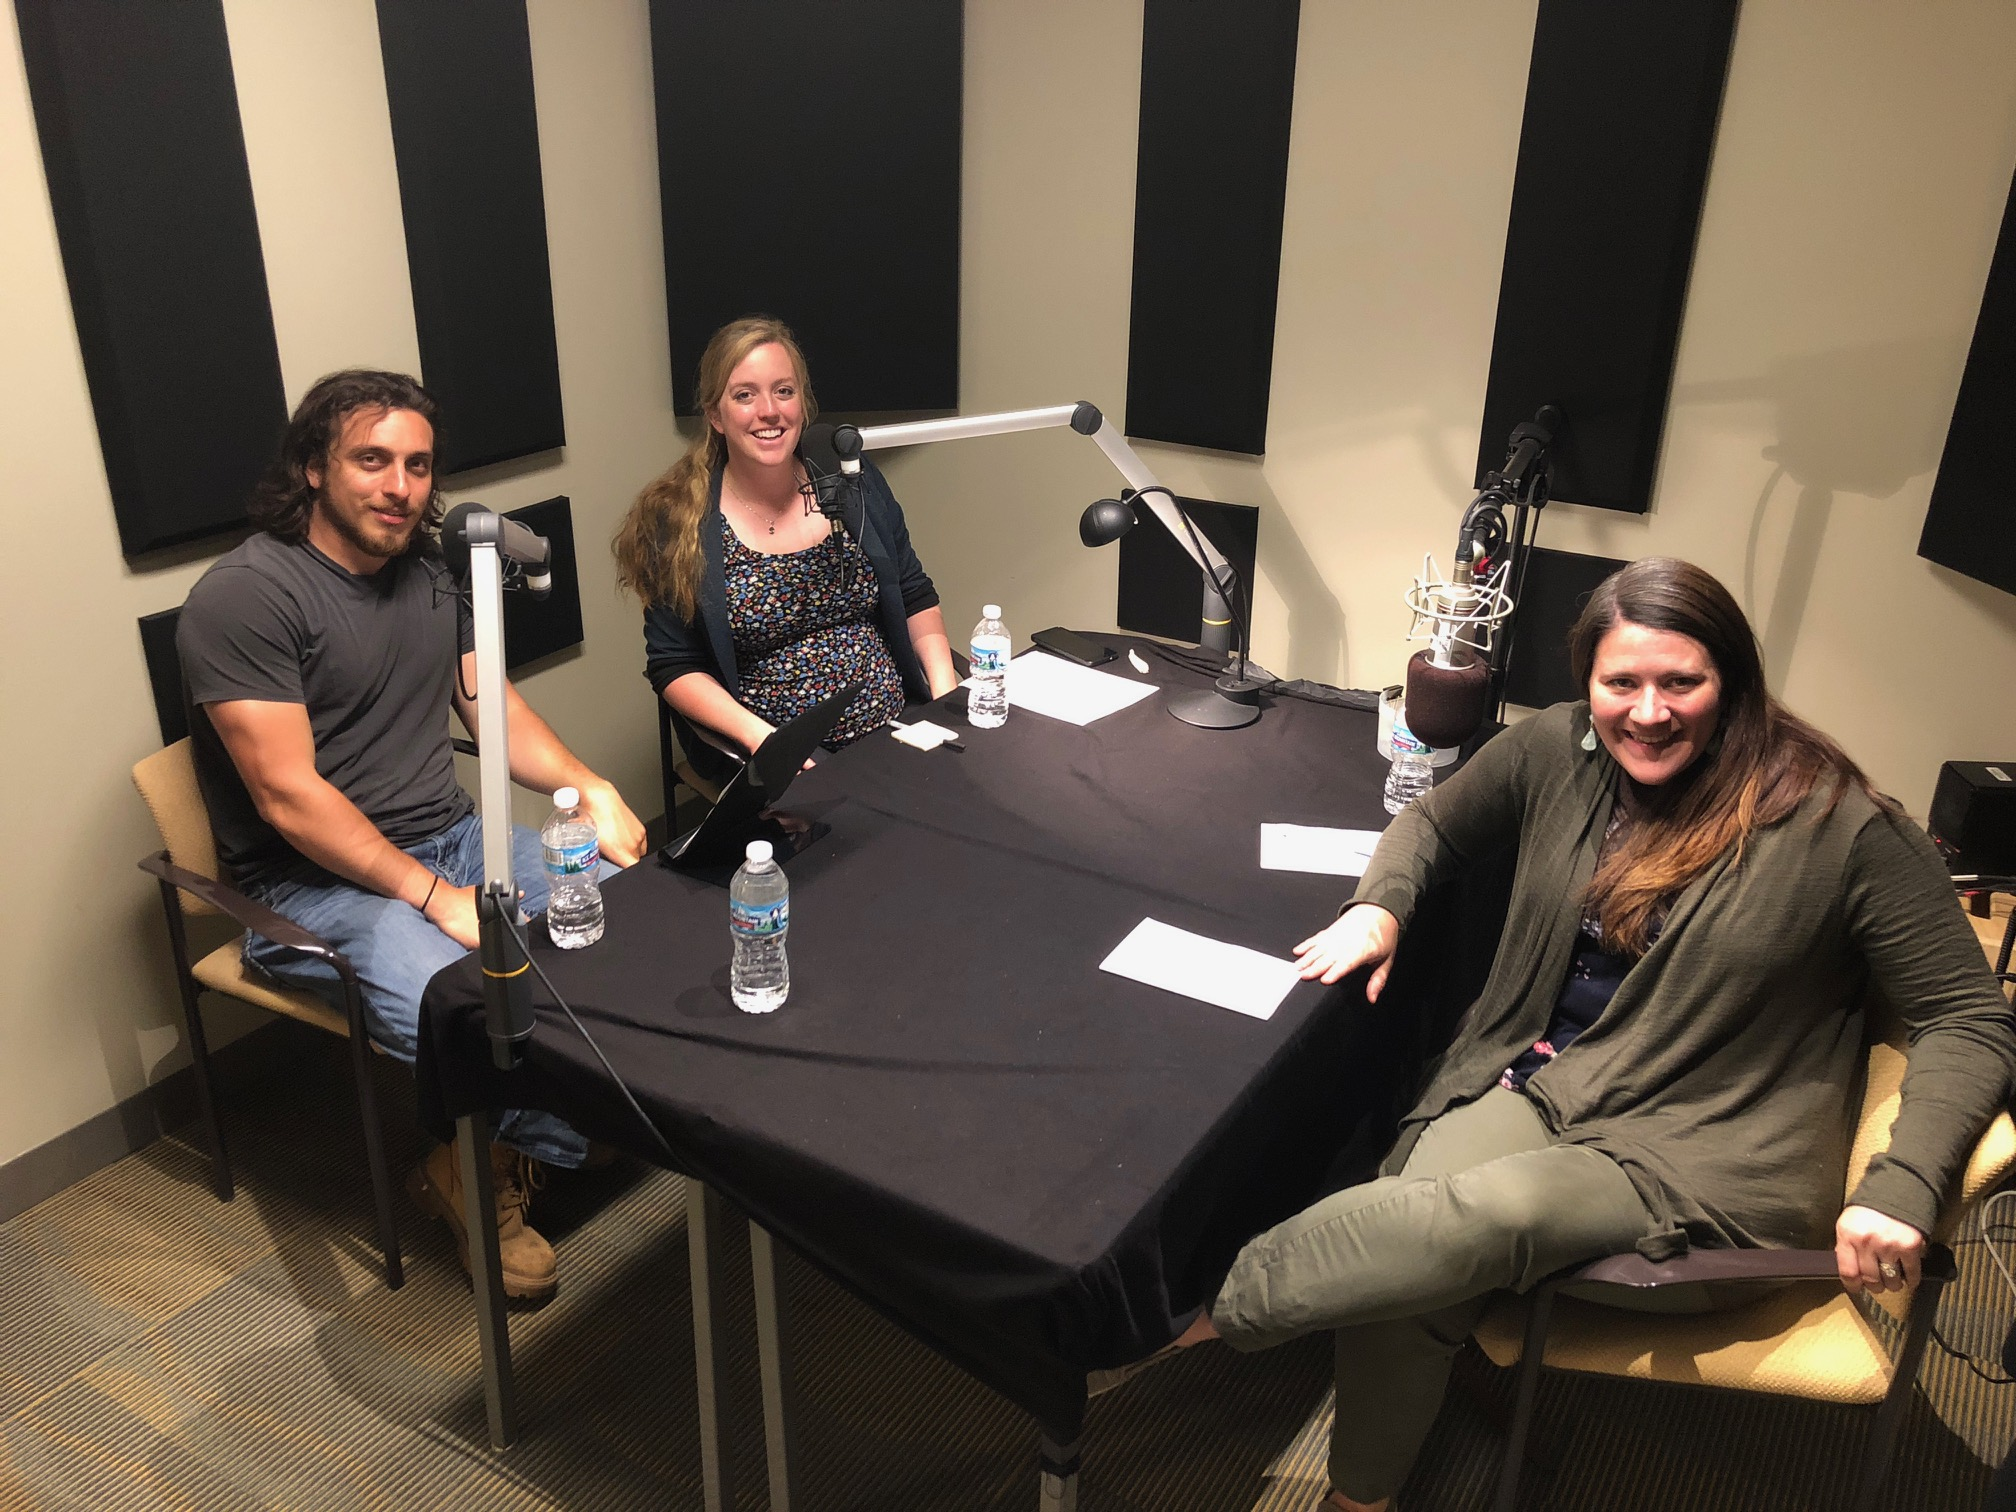 3 adults (2 female 1 male) sitting around a table in a recording booth with microphones